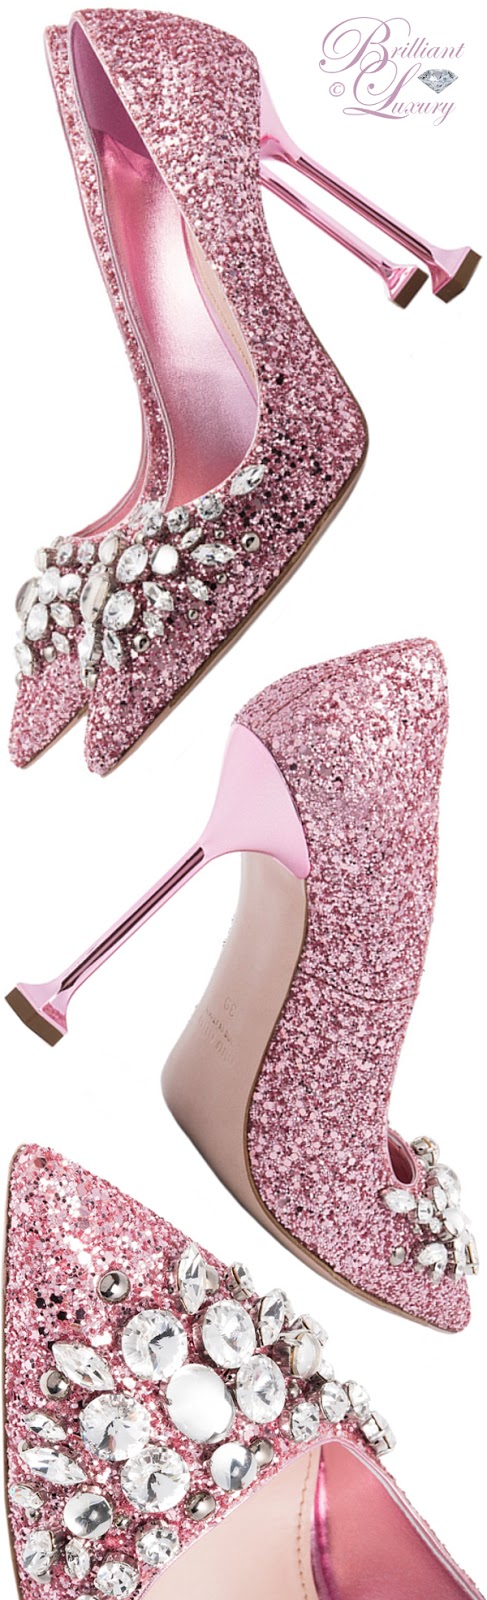 Brilliant Luxury ♦ Sophia Webster pink glitter swarovski pumps